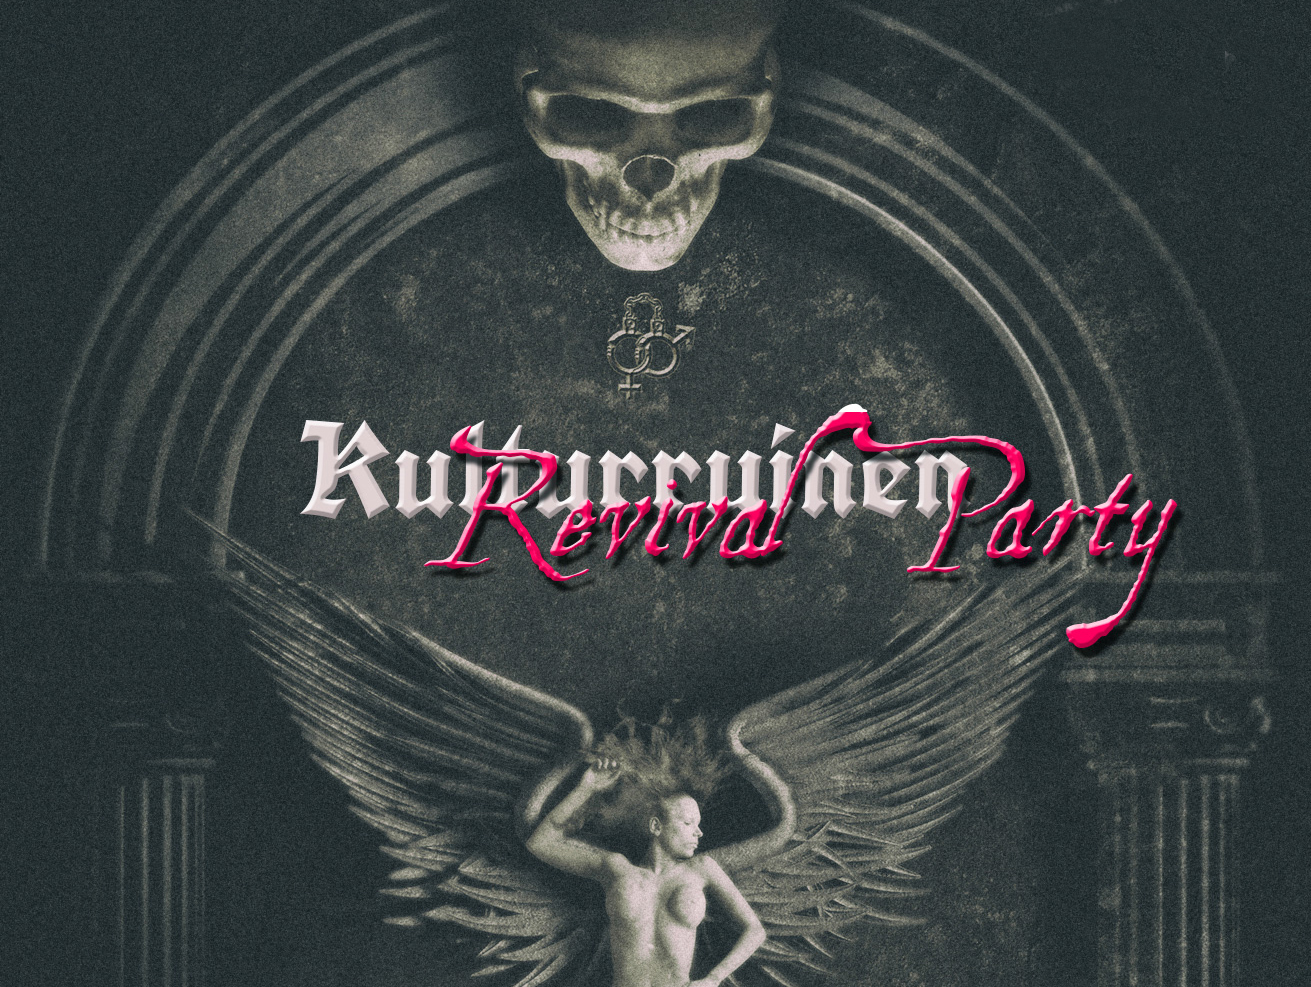 KULTURruine Revival Party